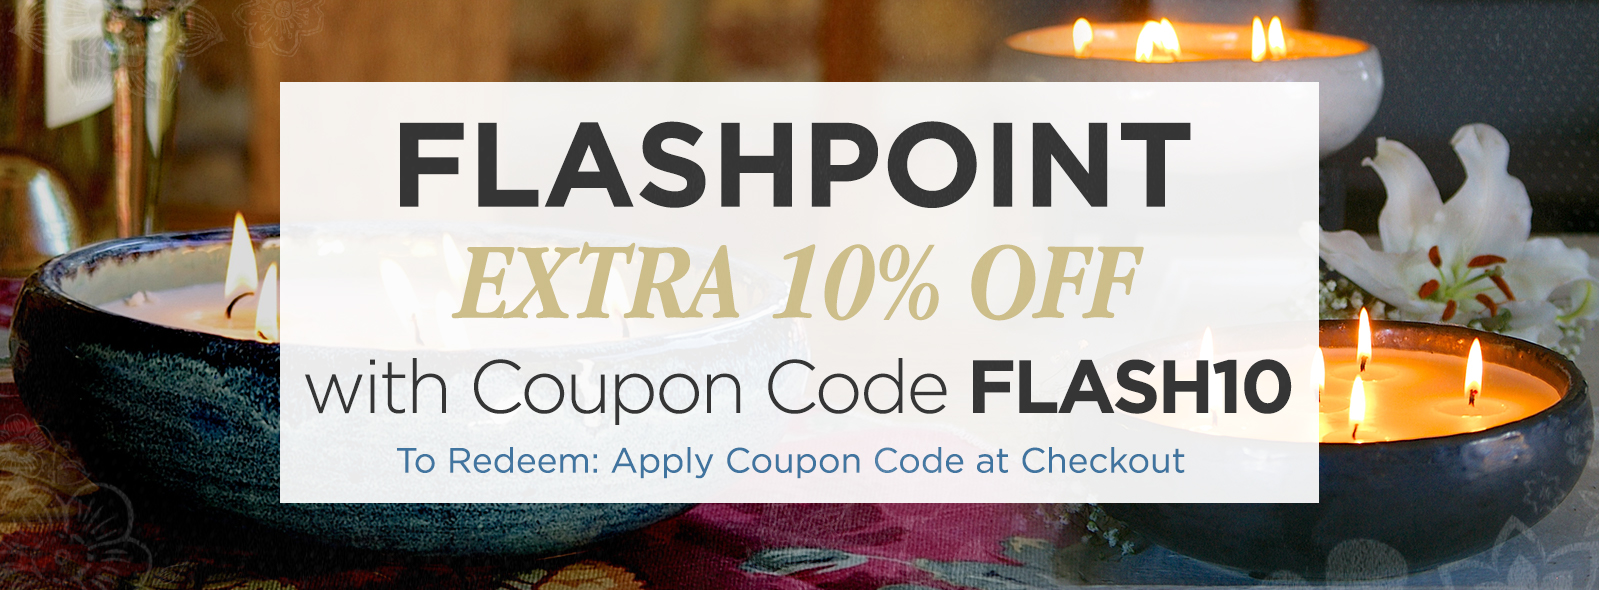 Flashpoint Candles